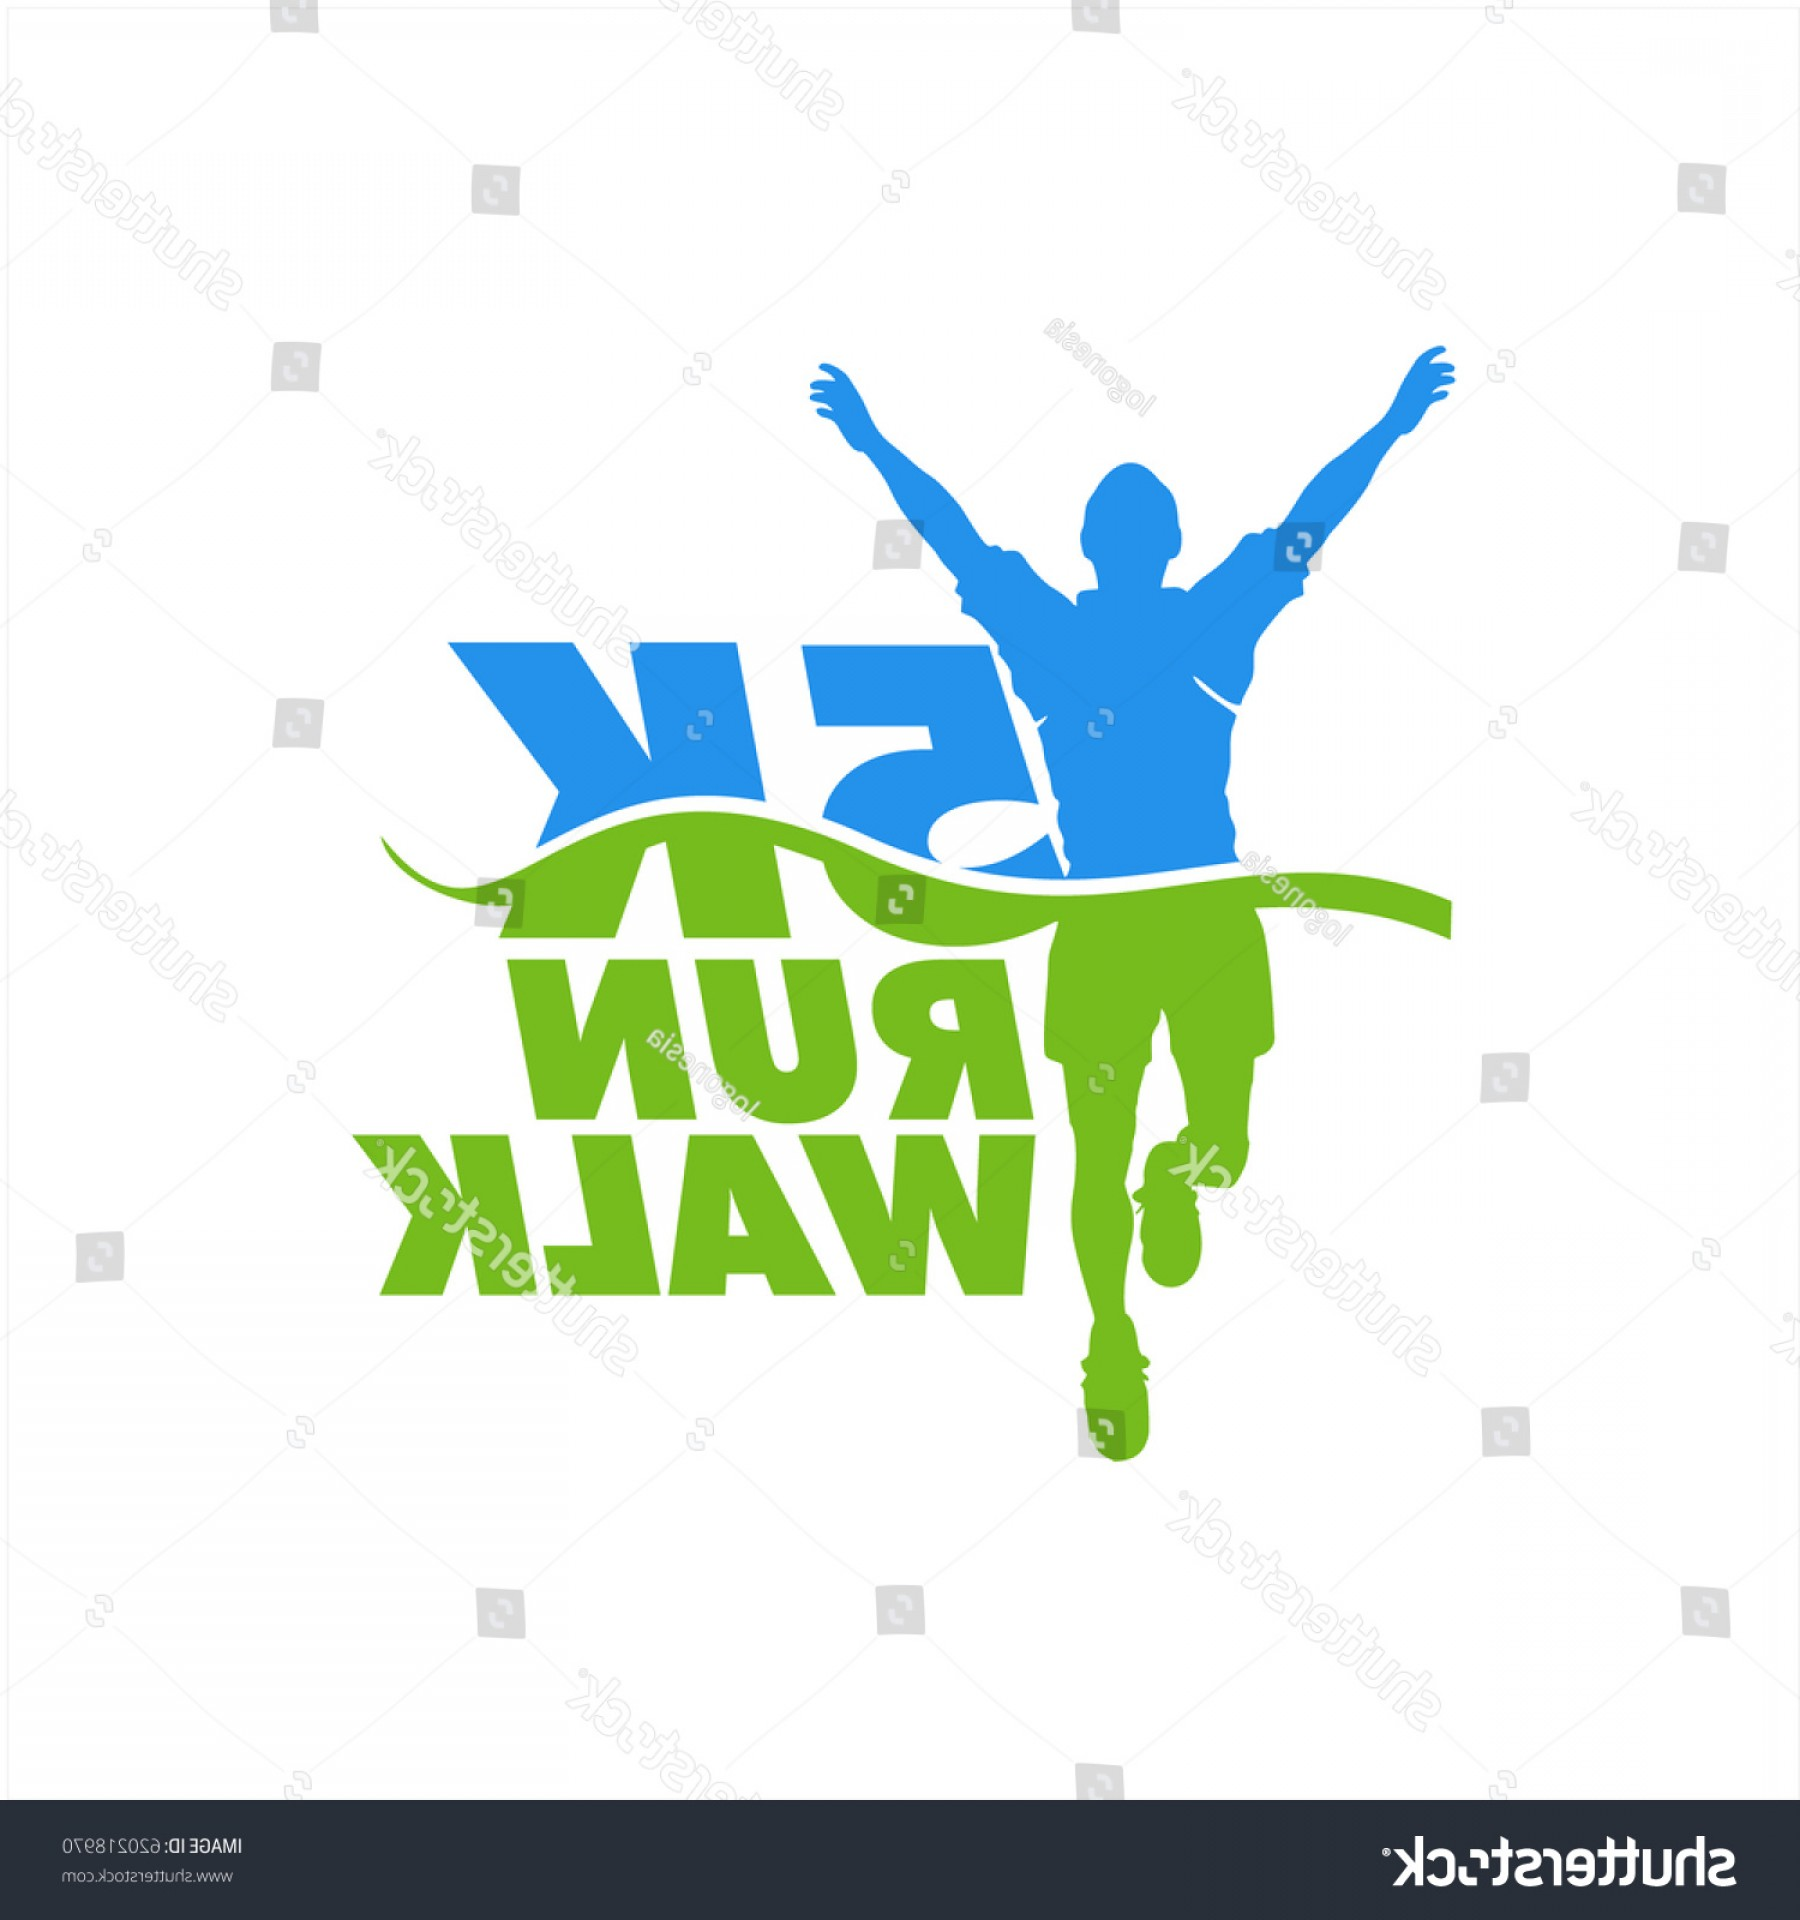 Shutterstock Vector Design With Runner: Runner Icon Marathon Event Vector Stock